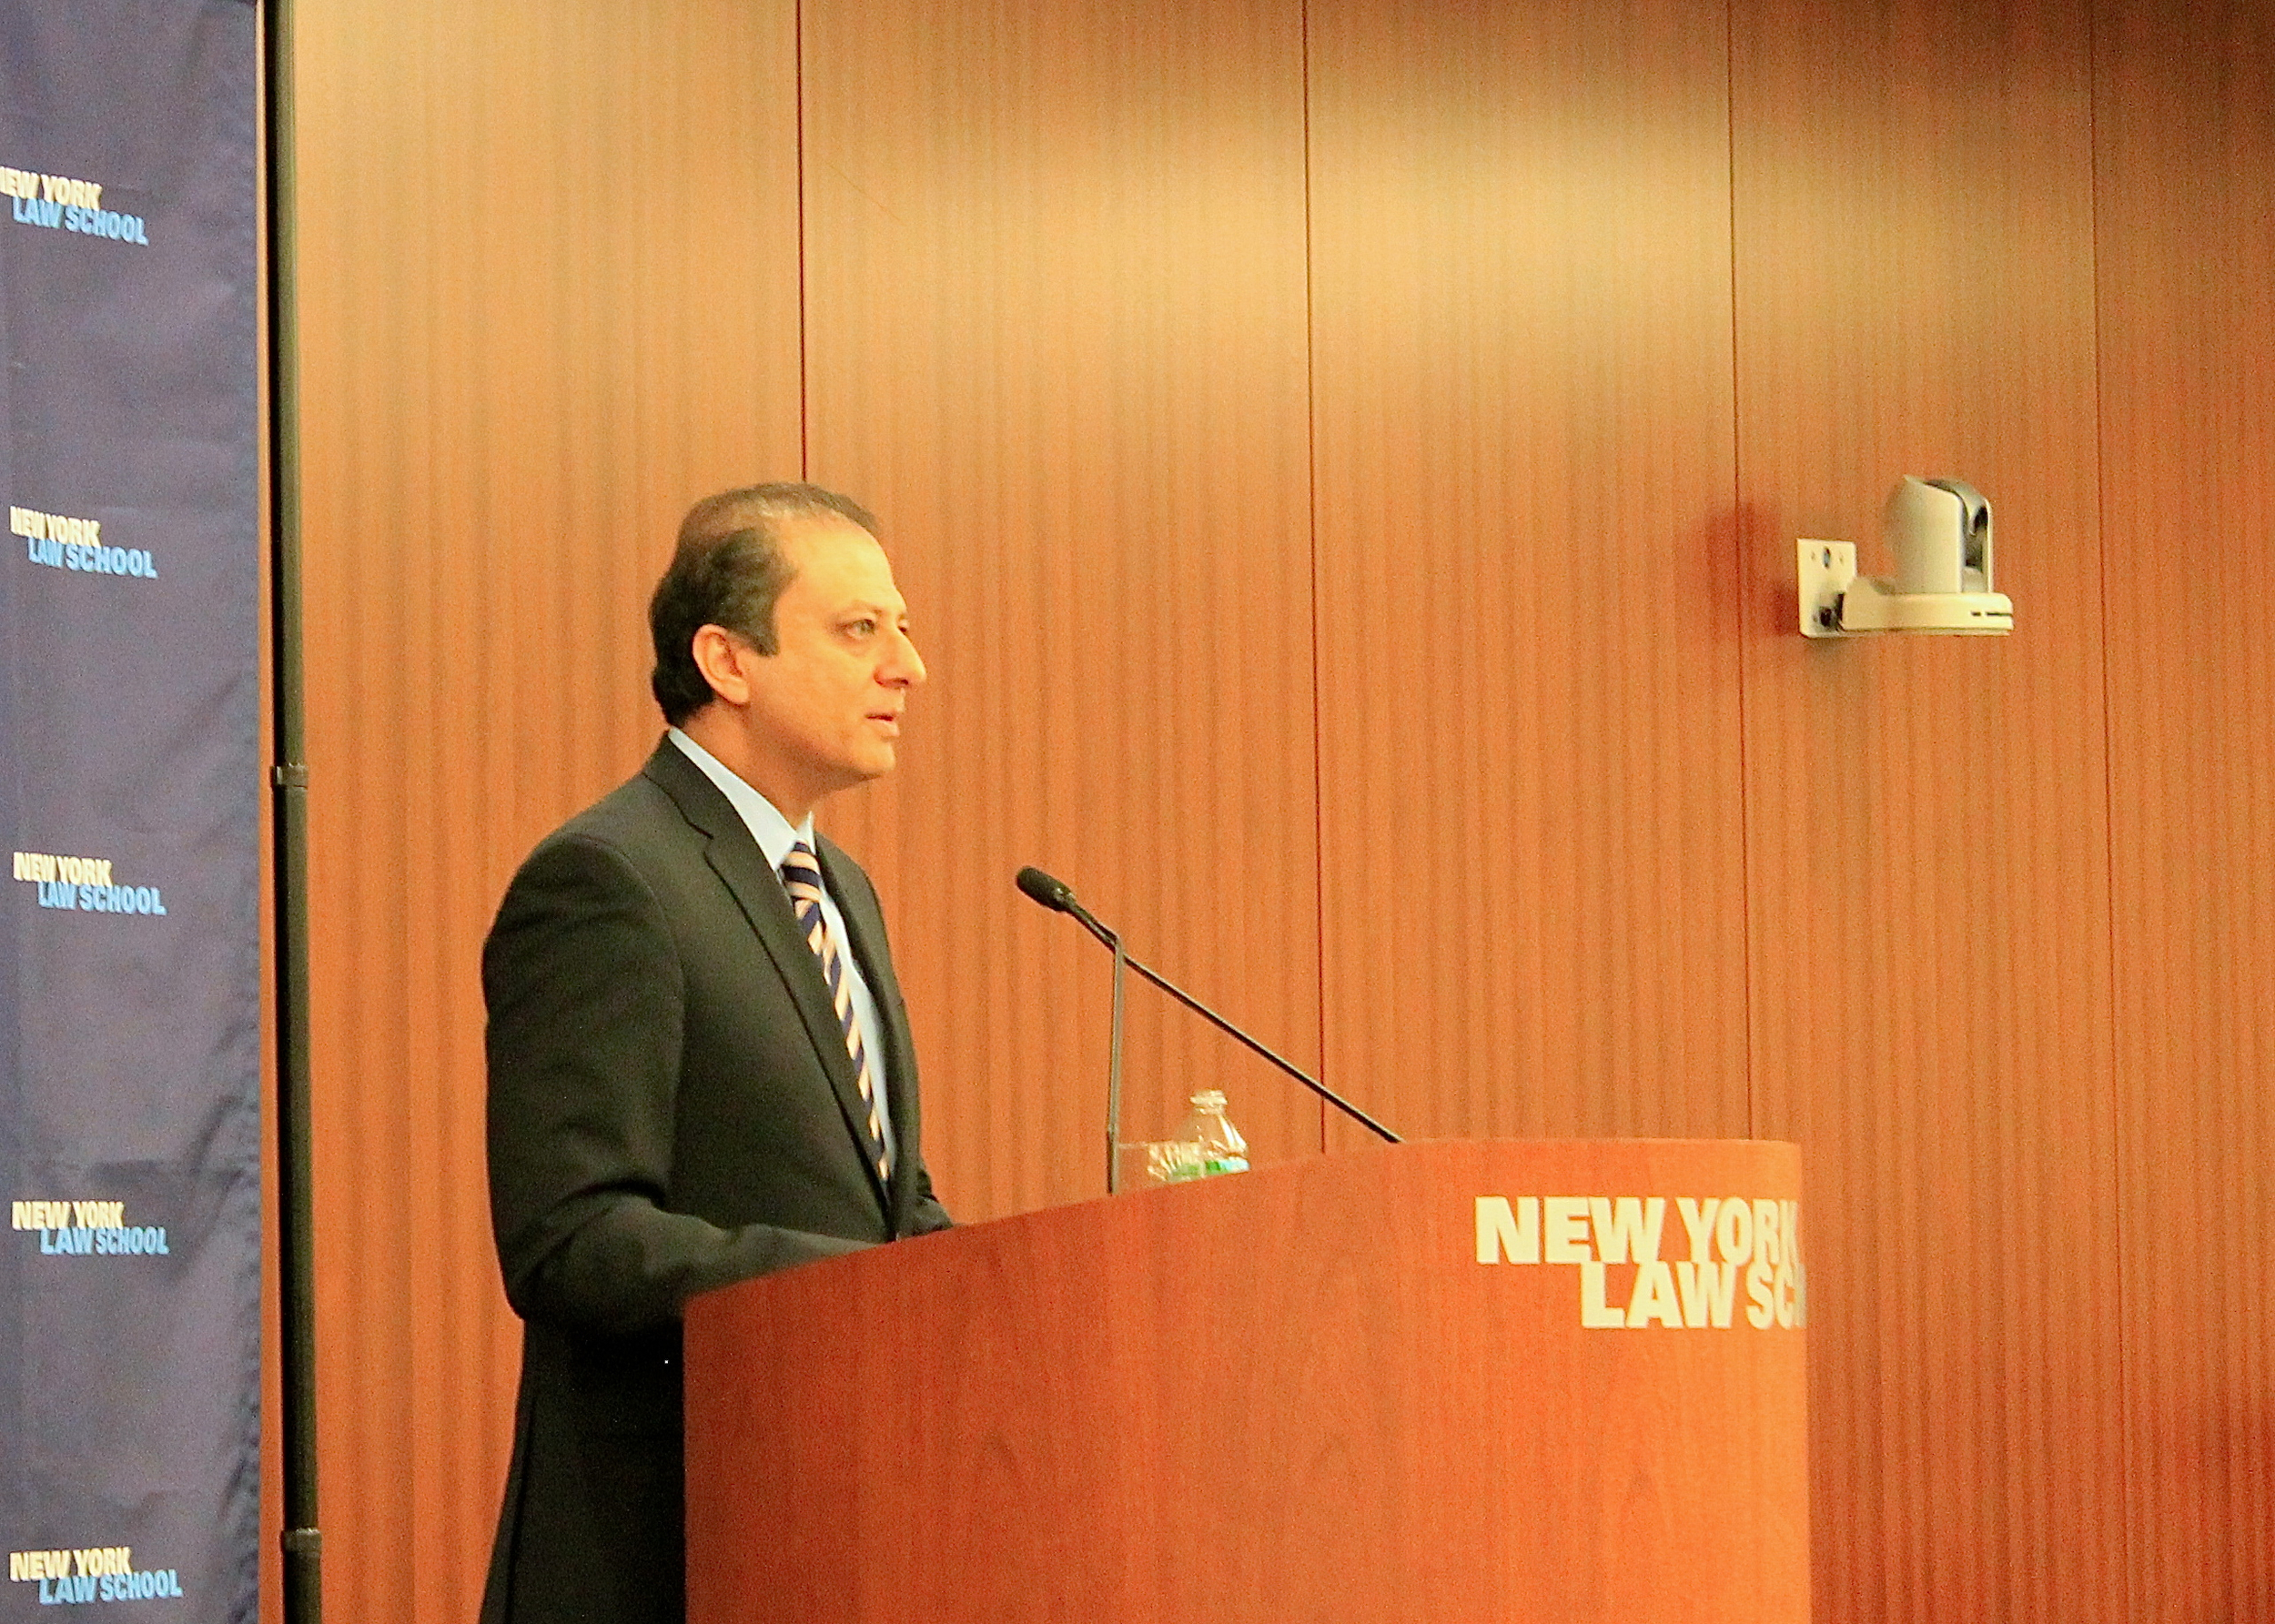 When U.S. Attorney  Preet Bharara  commented generally about the corruption-fighting prosecutions being undertaken by his office during a speech at  New York Law School  in January 2015, his office later faced a backlash from criminal defense attorneys and a Federal judge for having attempted to  influence public opinion  about Federal corruption charges that had been filed against then New York State Assembly Speaker  Sheldon Silver  (D-Lower East Side). Source :  Louis Flores/Progress Queens/File Photograph